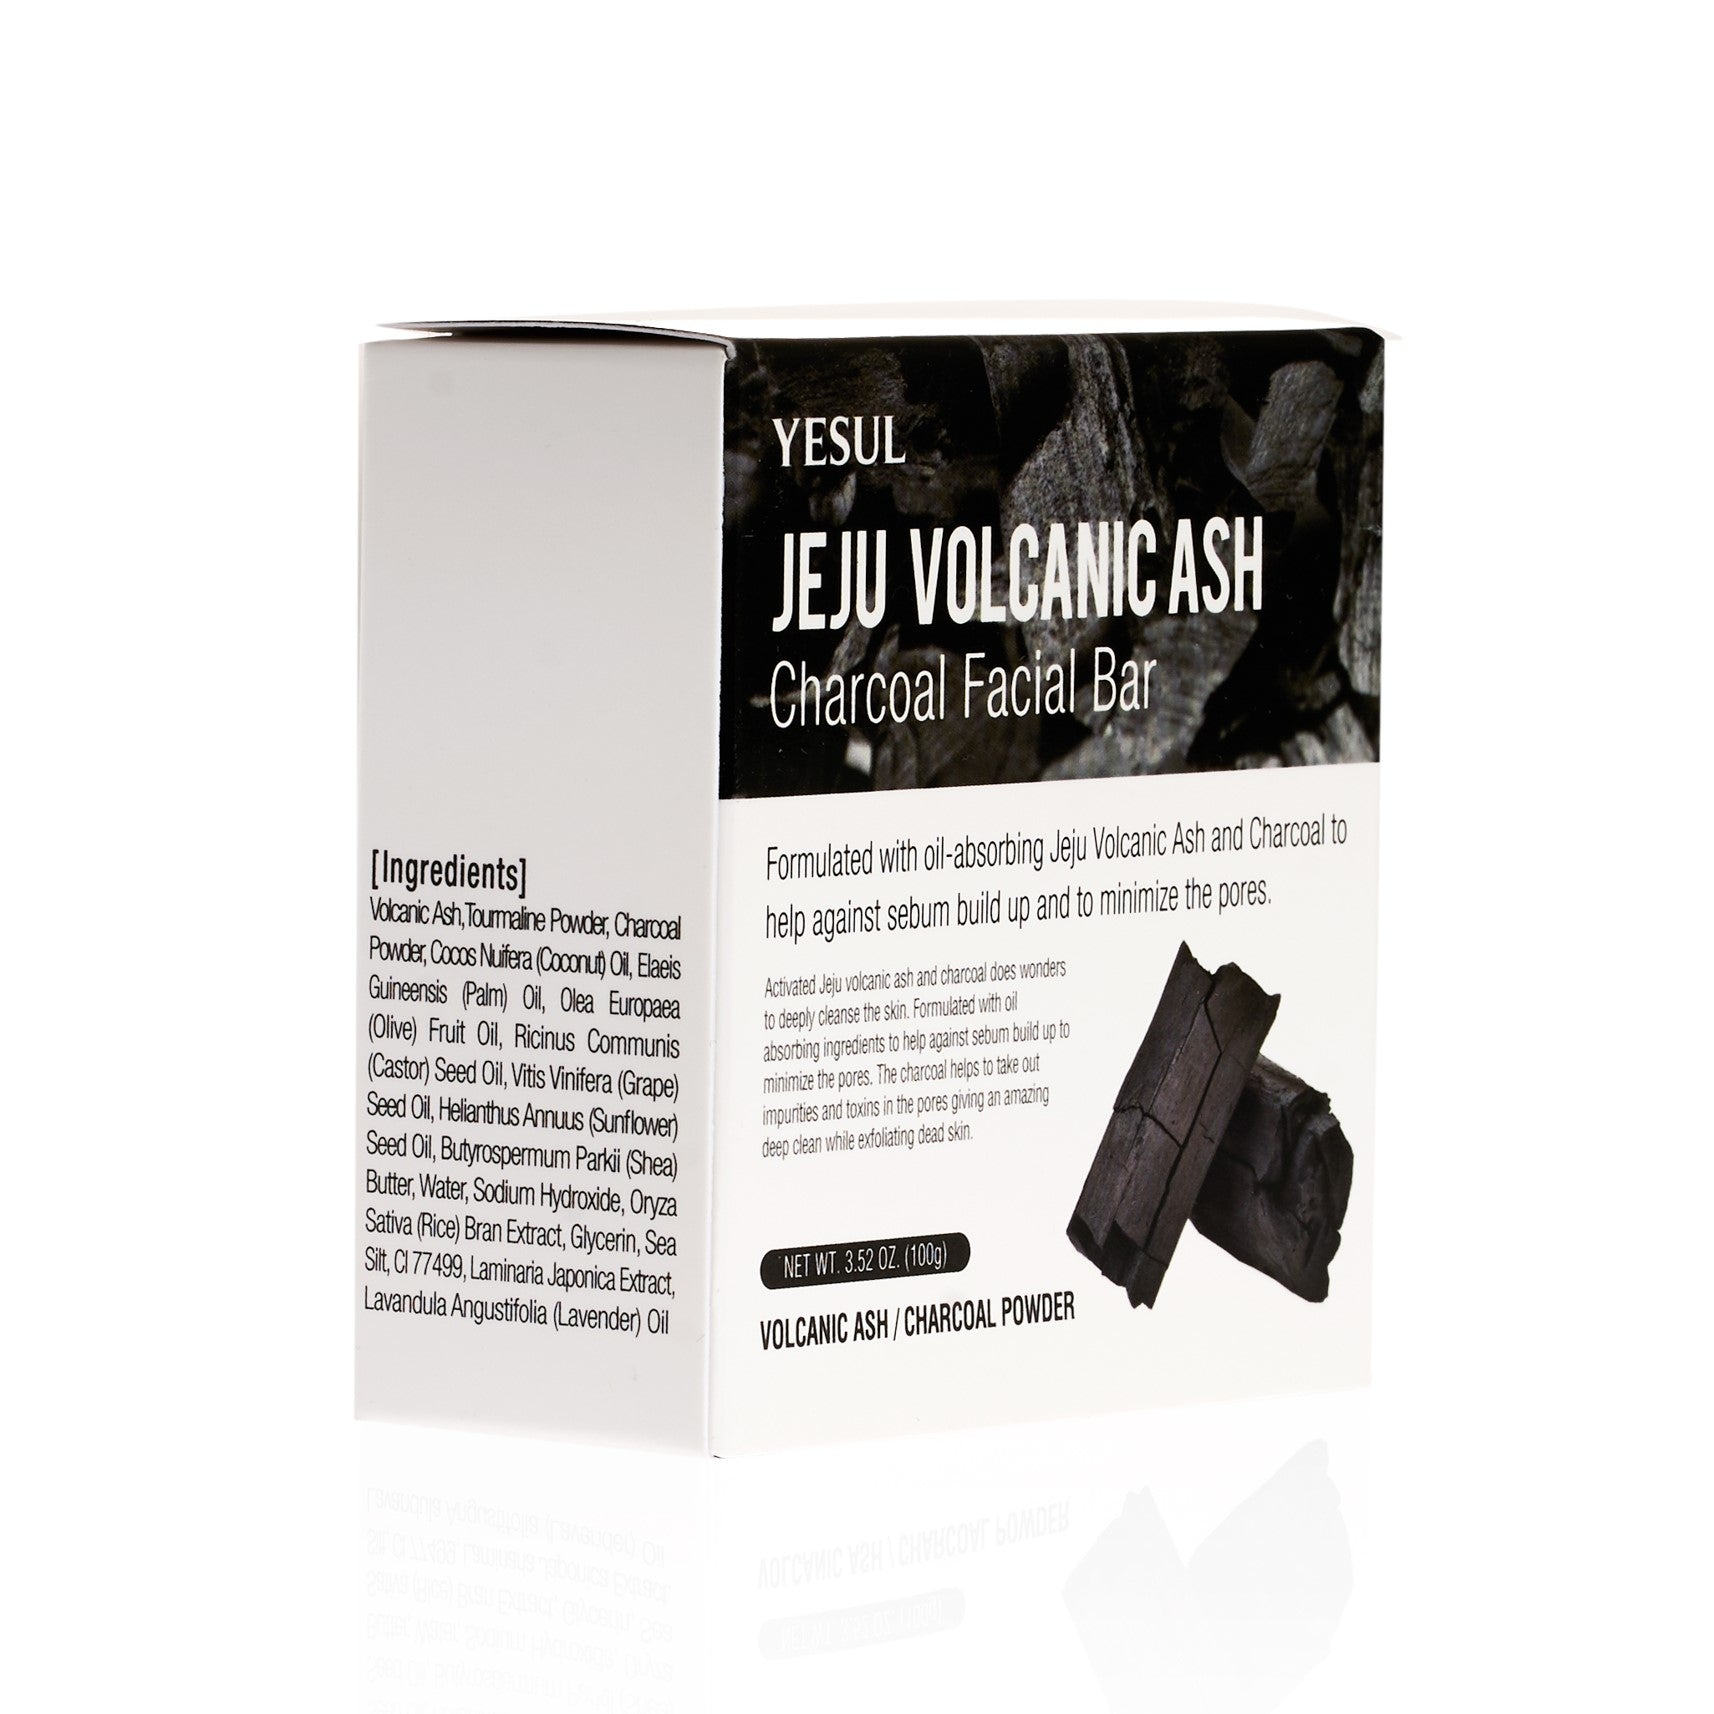 YESUL Jeju Volcanic Ash Charcoal Facial Bar ZGTS Titanium Micro 192 Needle Derma Skin Roller Acne Scar Wrinkle Anti-Age  0.75mm